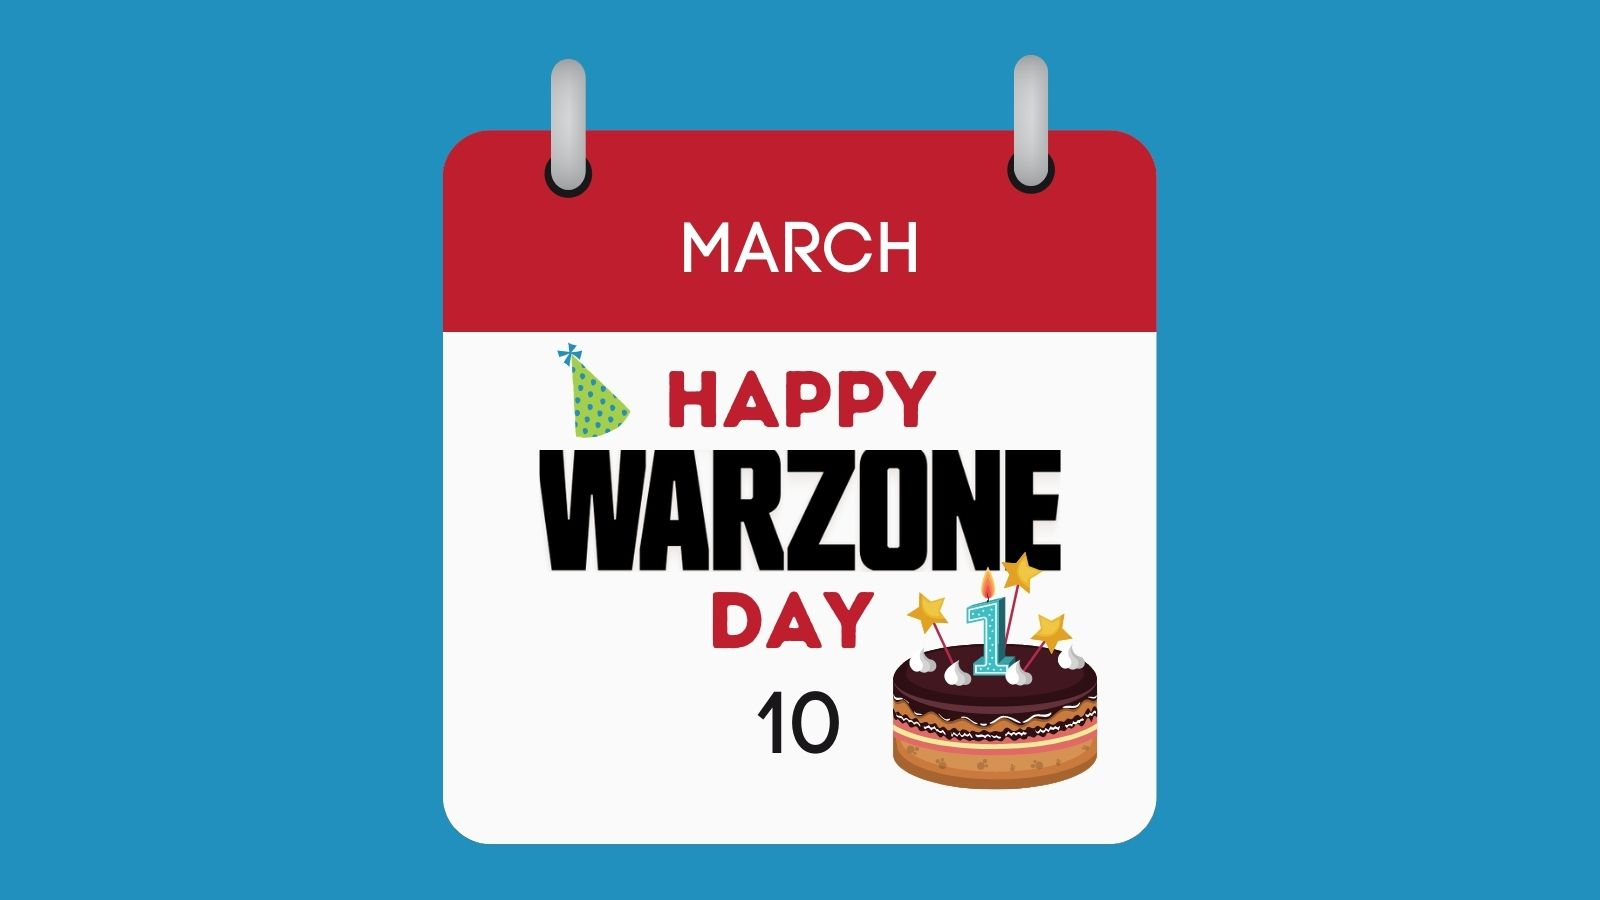 Call of Duty's Warzone was released on March 10, 2020. Since then, already prominent content creators and new faces have exploded into the streaming scene.